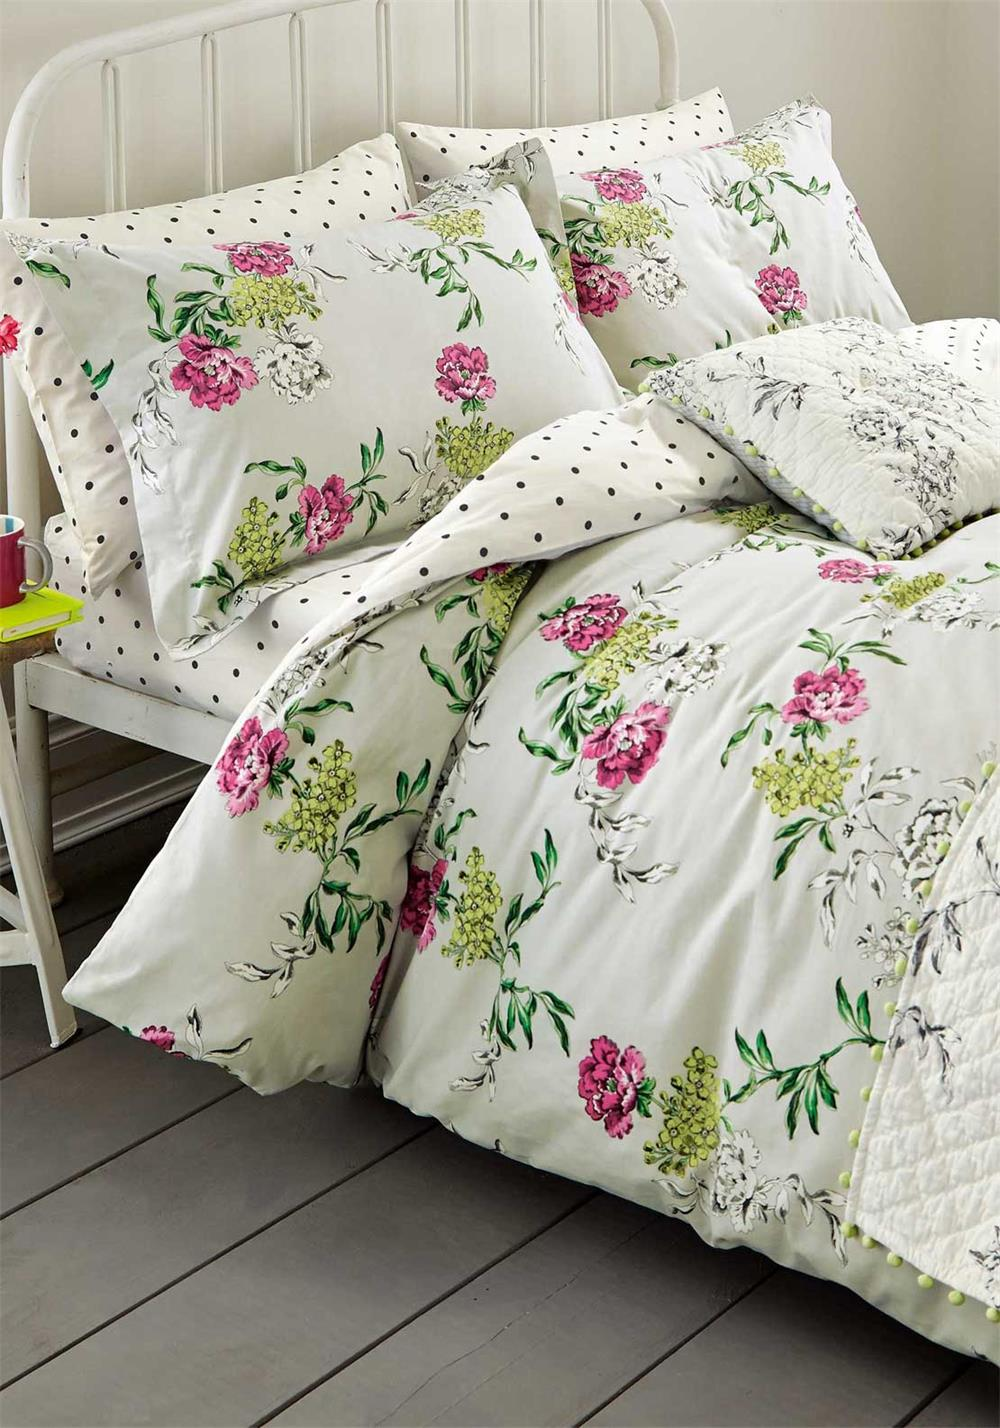 Joules Sleep Tight Buckingham Floral Duvet Cover, Crème With Multi Floral Print